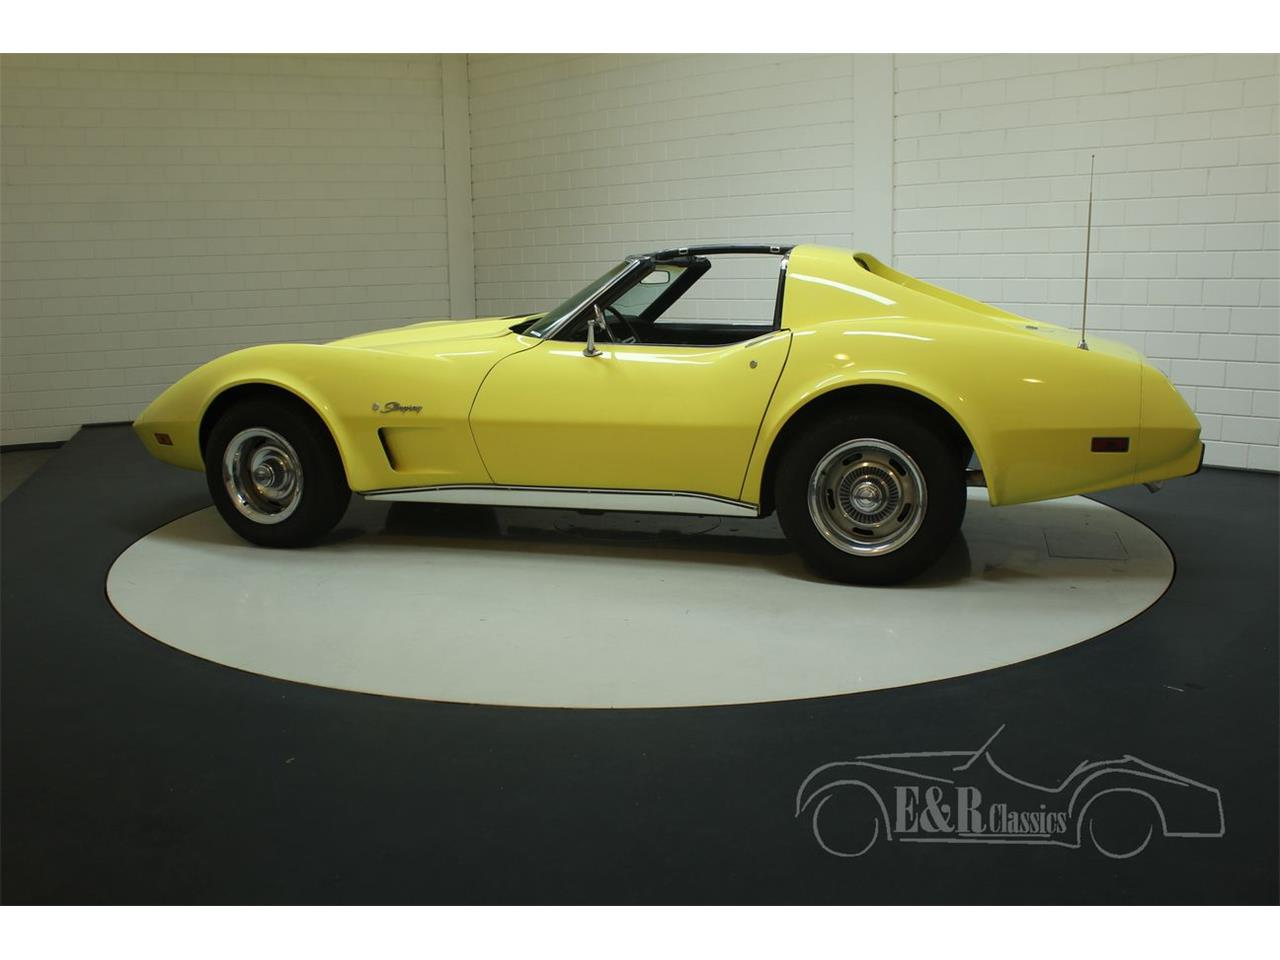 Large Picture of 1974 Corvette located in noord brabant - $34,292.00 Offered by E & R Classics - PFBT